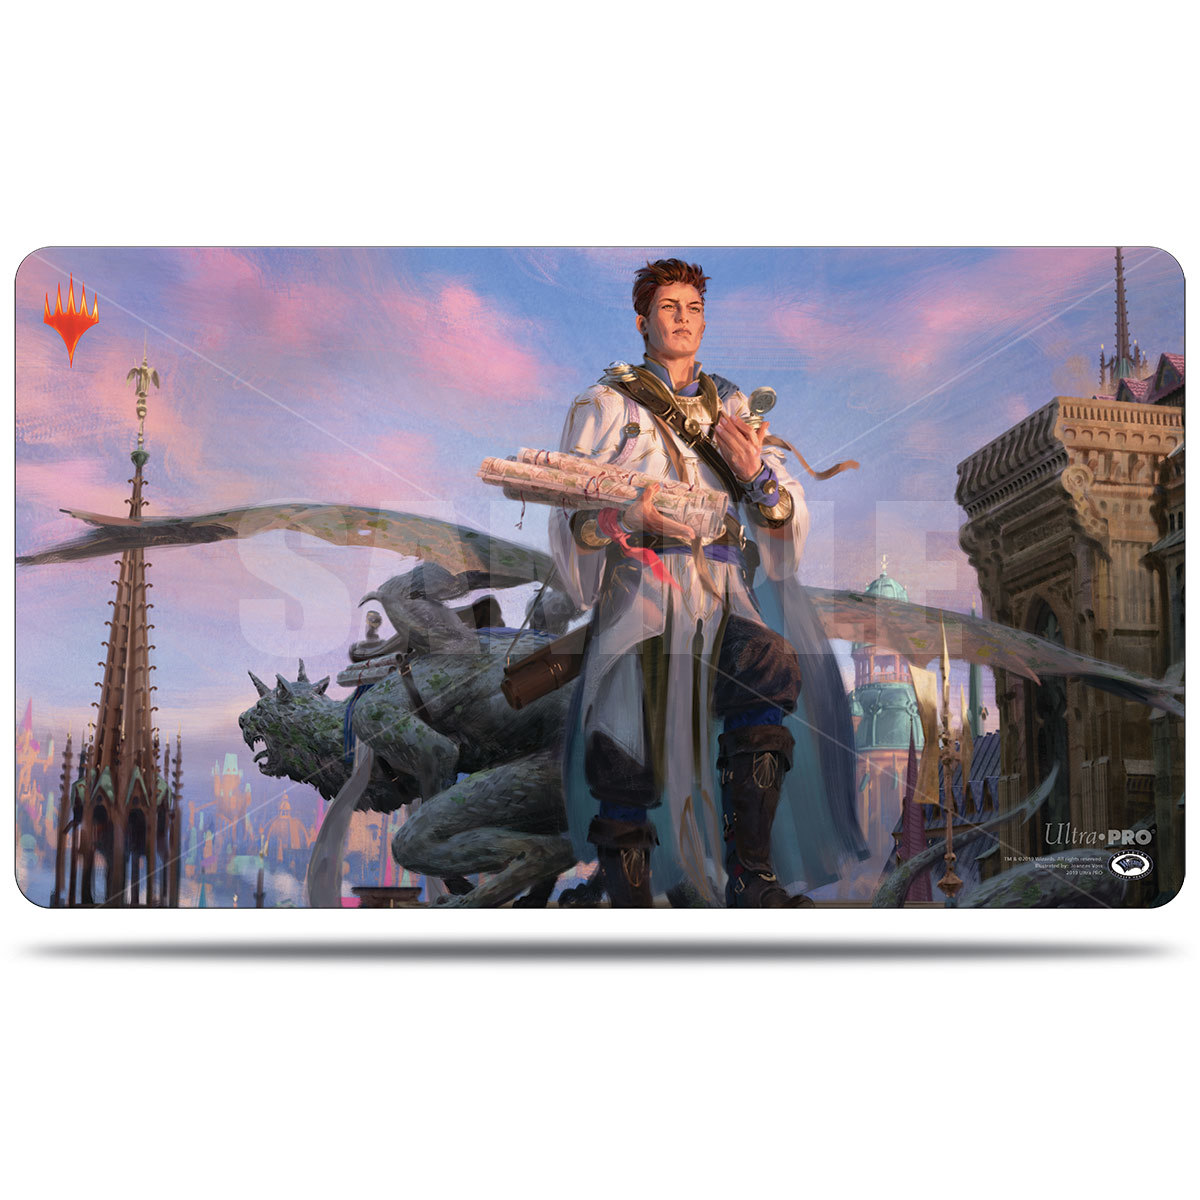 Ultra Pro: Magic The Gathering Playmat: War of the Spark v3 image